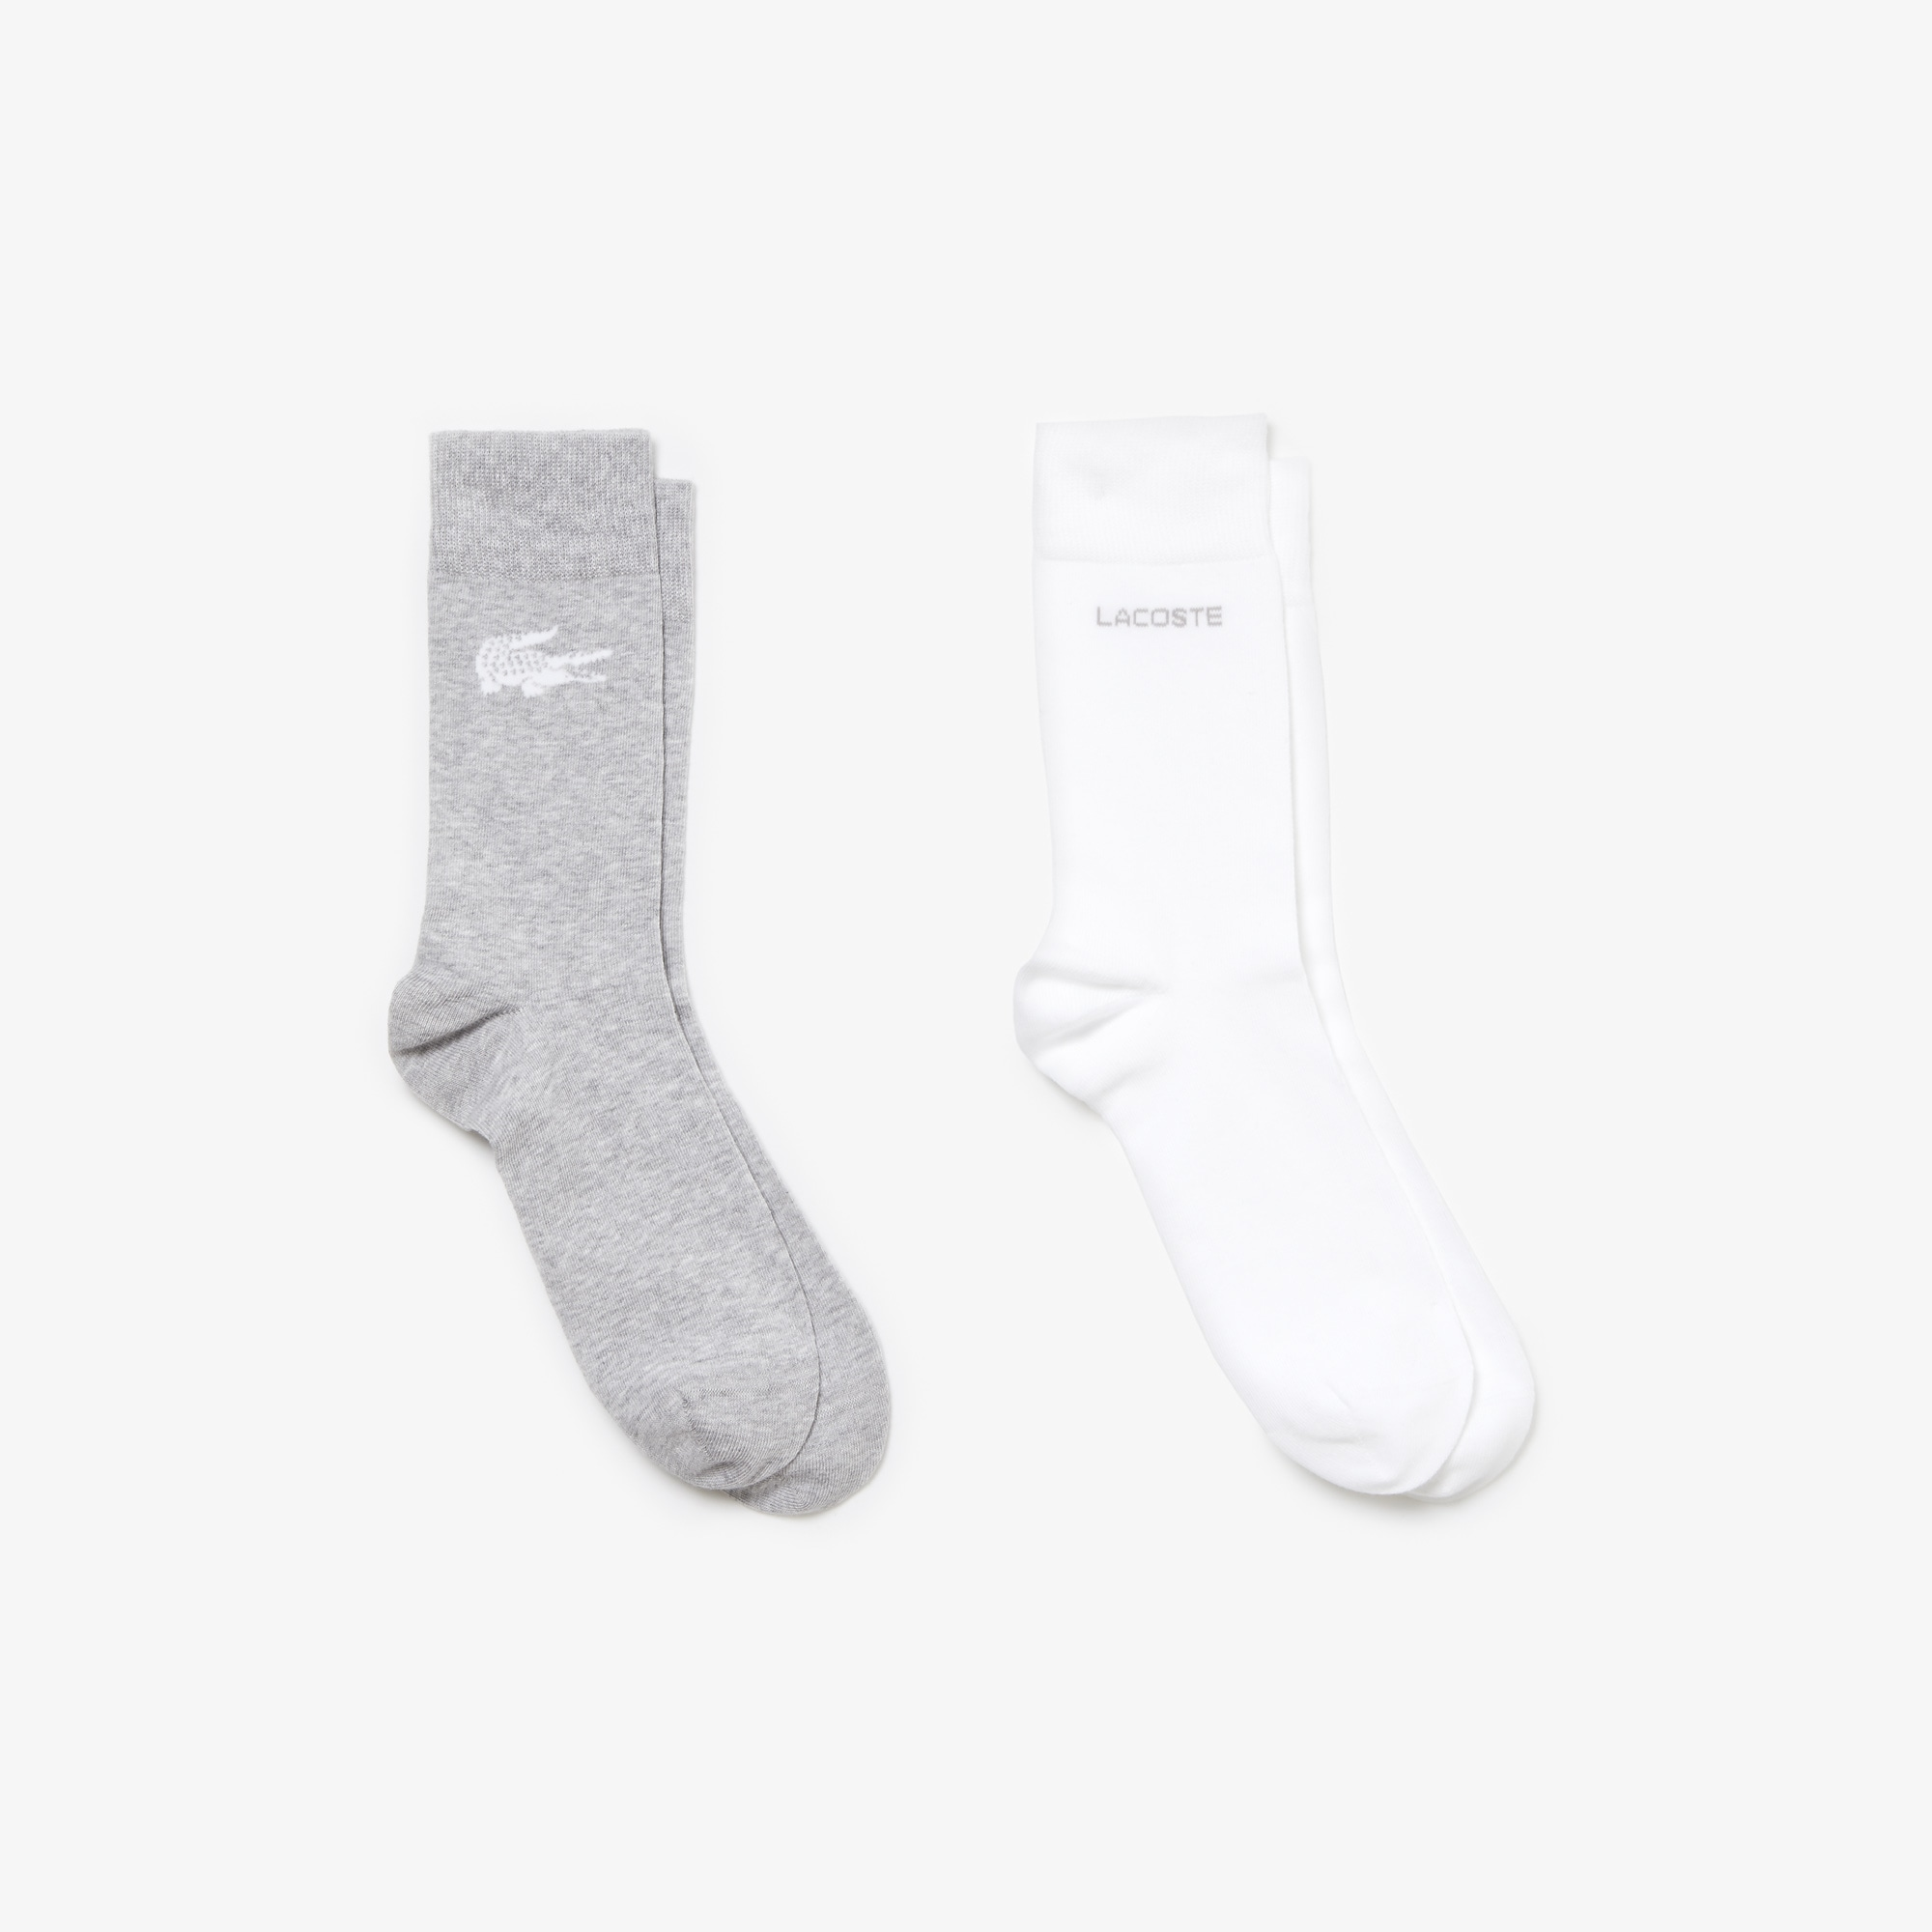 Men's Two-pack of coordinated socks in print jersey